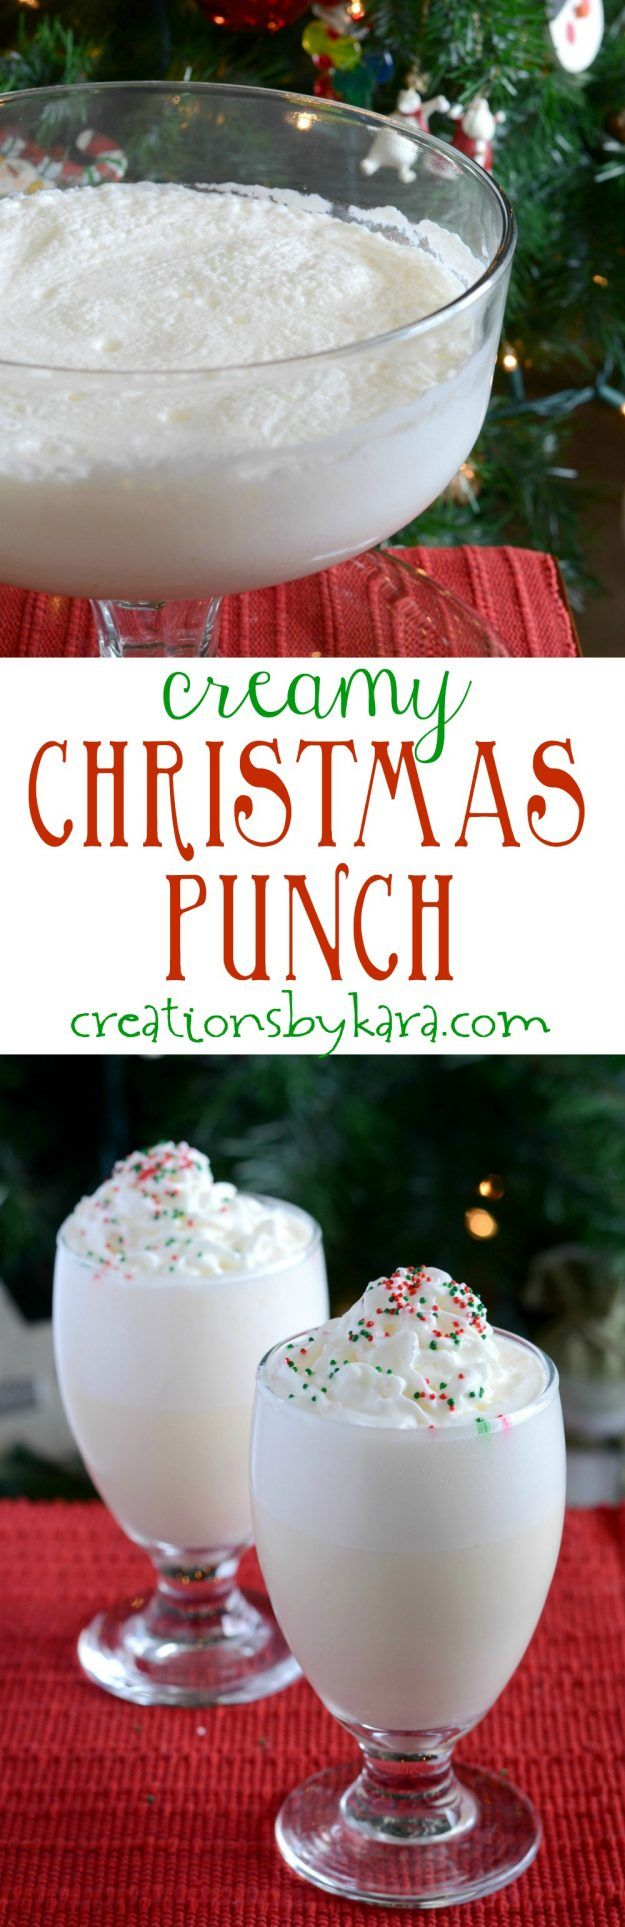 This Creamy Christmas Punch will be a hit at any holiday gathering! It is easy to make, and so delicious. A perfect punch recipe!